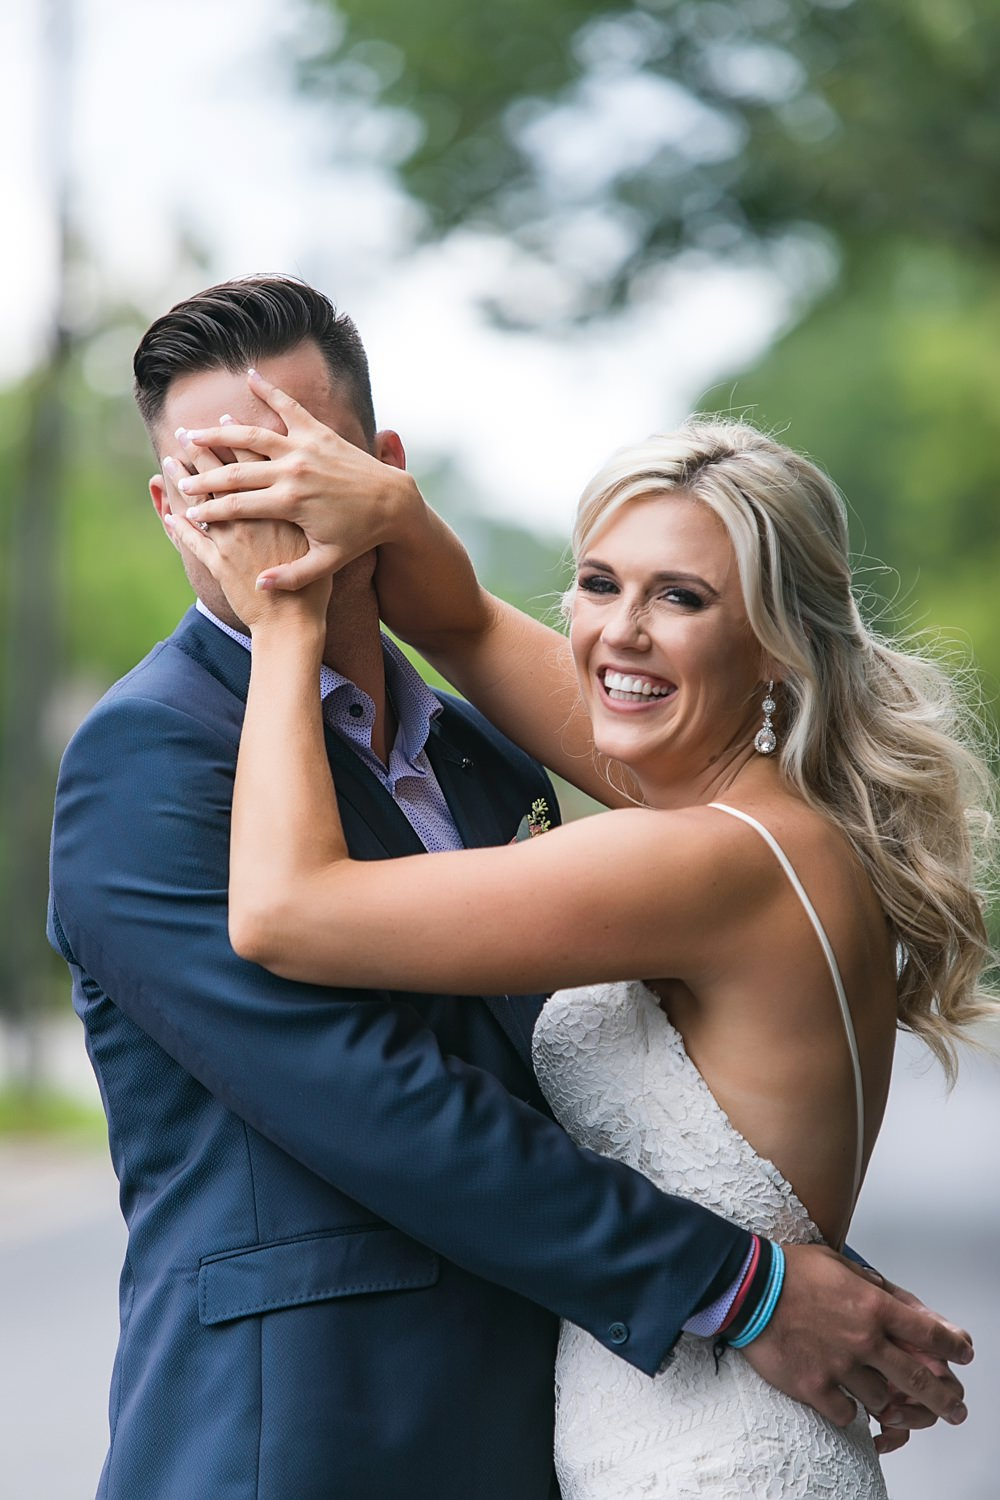 stave room wedding : l events : vue photography 0029